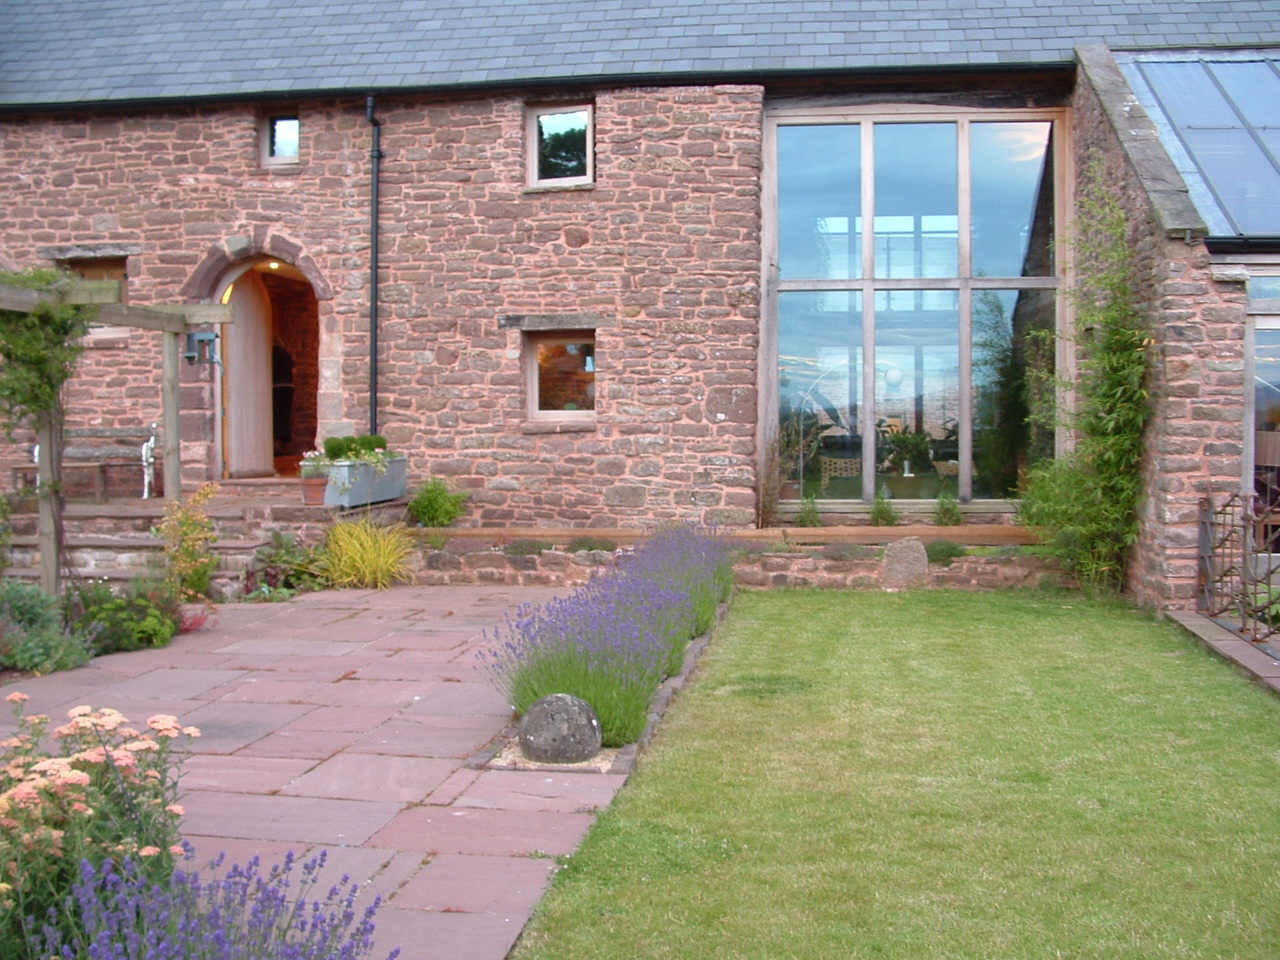 Clipped lavender edges a rectangular lawn outside the large picture windows of a beautiful medieval hall house.